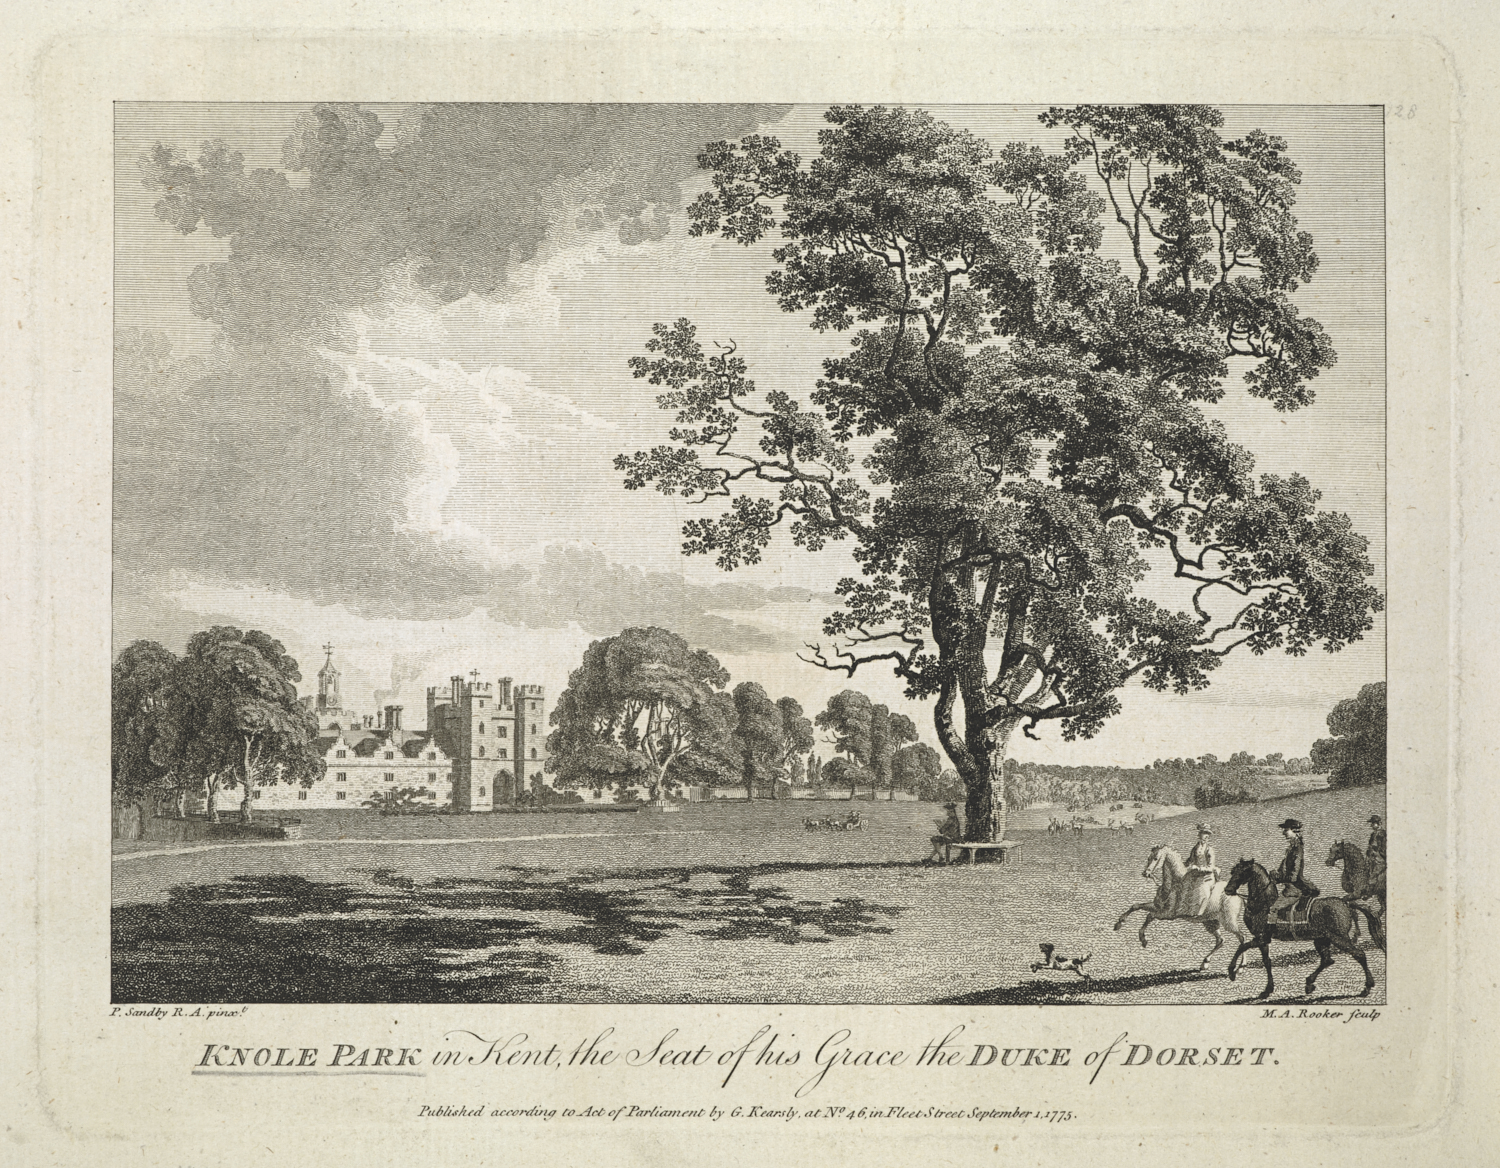 KNOLE PARK in Kent, the seat of his Grace the DUKE of DORSET. / P. Sandby R.A. pinxt.; M.A. Rooker sculp. Illustration to: 'The Copper plate magazine; or, Monthly treasure, for the admirers of the imitative arts'. (London [England] : printed for G[eorge]. Kearsly, no. 46, Fleet Street, 1774-1778.).  View of Knole Park, the large and sprawling house beyond with turrets on either side of the gatehouse, a lake and woods in the park beyond, a carriage driving along the road, a large tree to the middleground with an encircling bench with a gentleman reading a book, three elegant riders with a dog to the foreground.